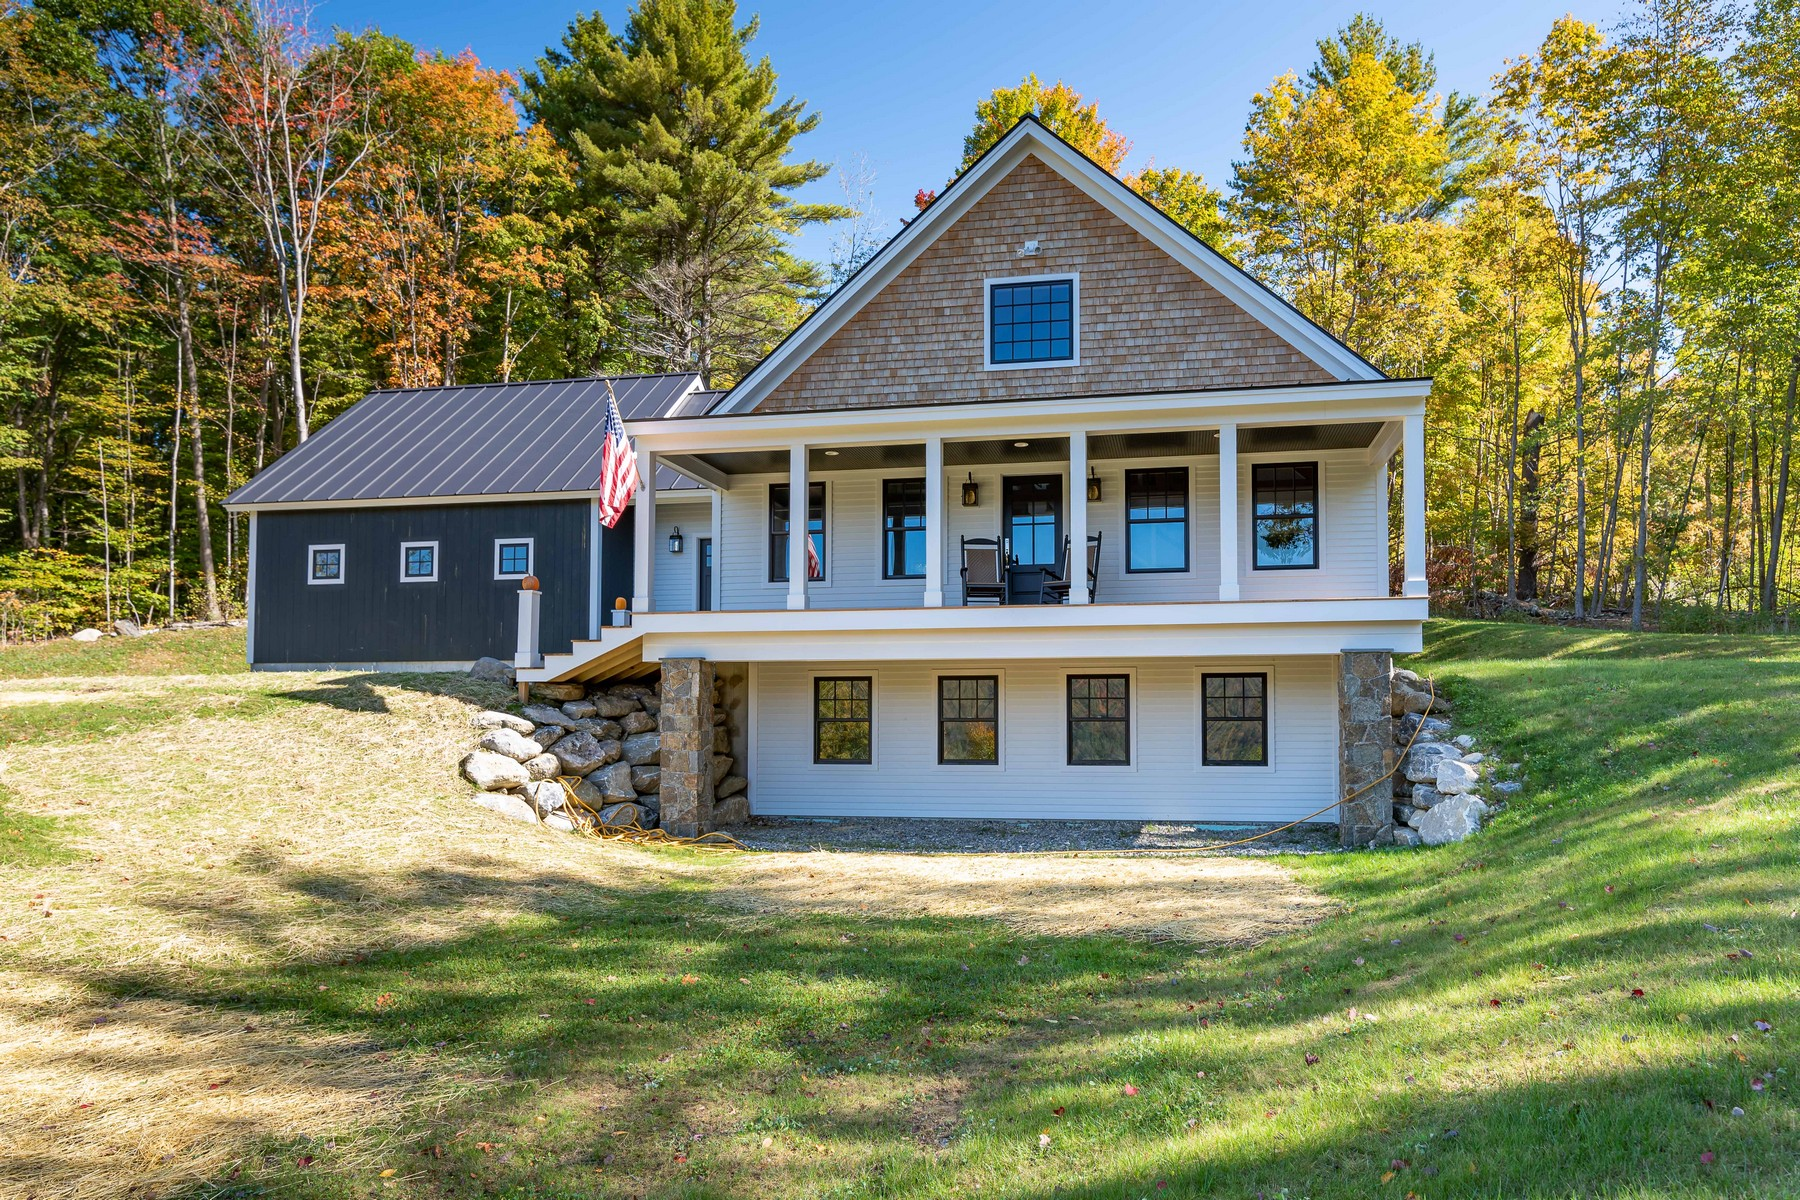 Single Family Homes for Sale at Brand New Construction-Pristine with Views Long View Rd Dorset, Vermont 05251 United States